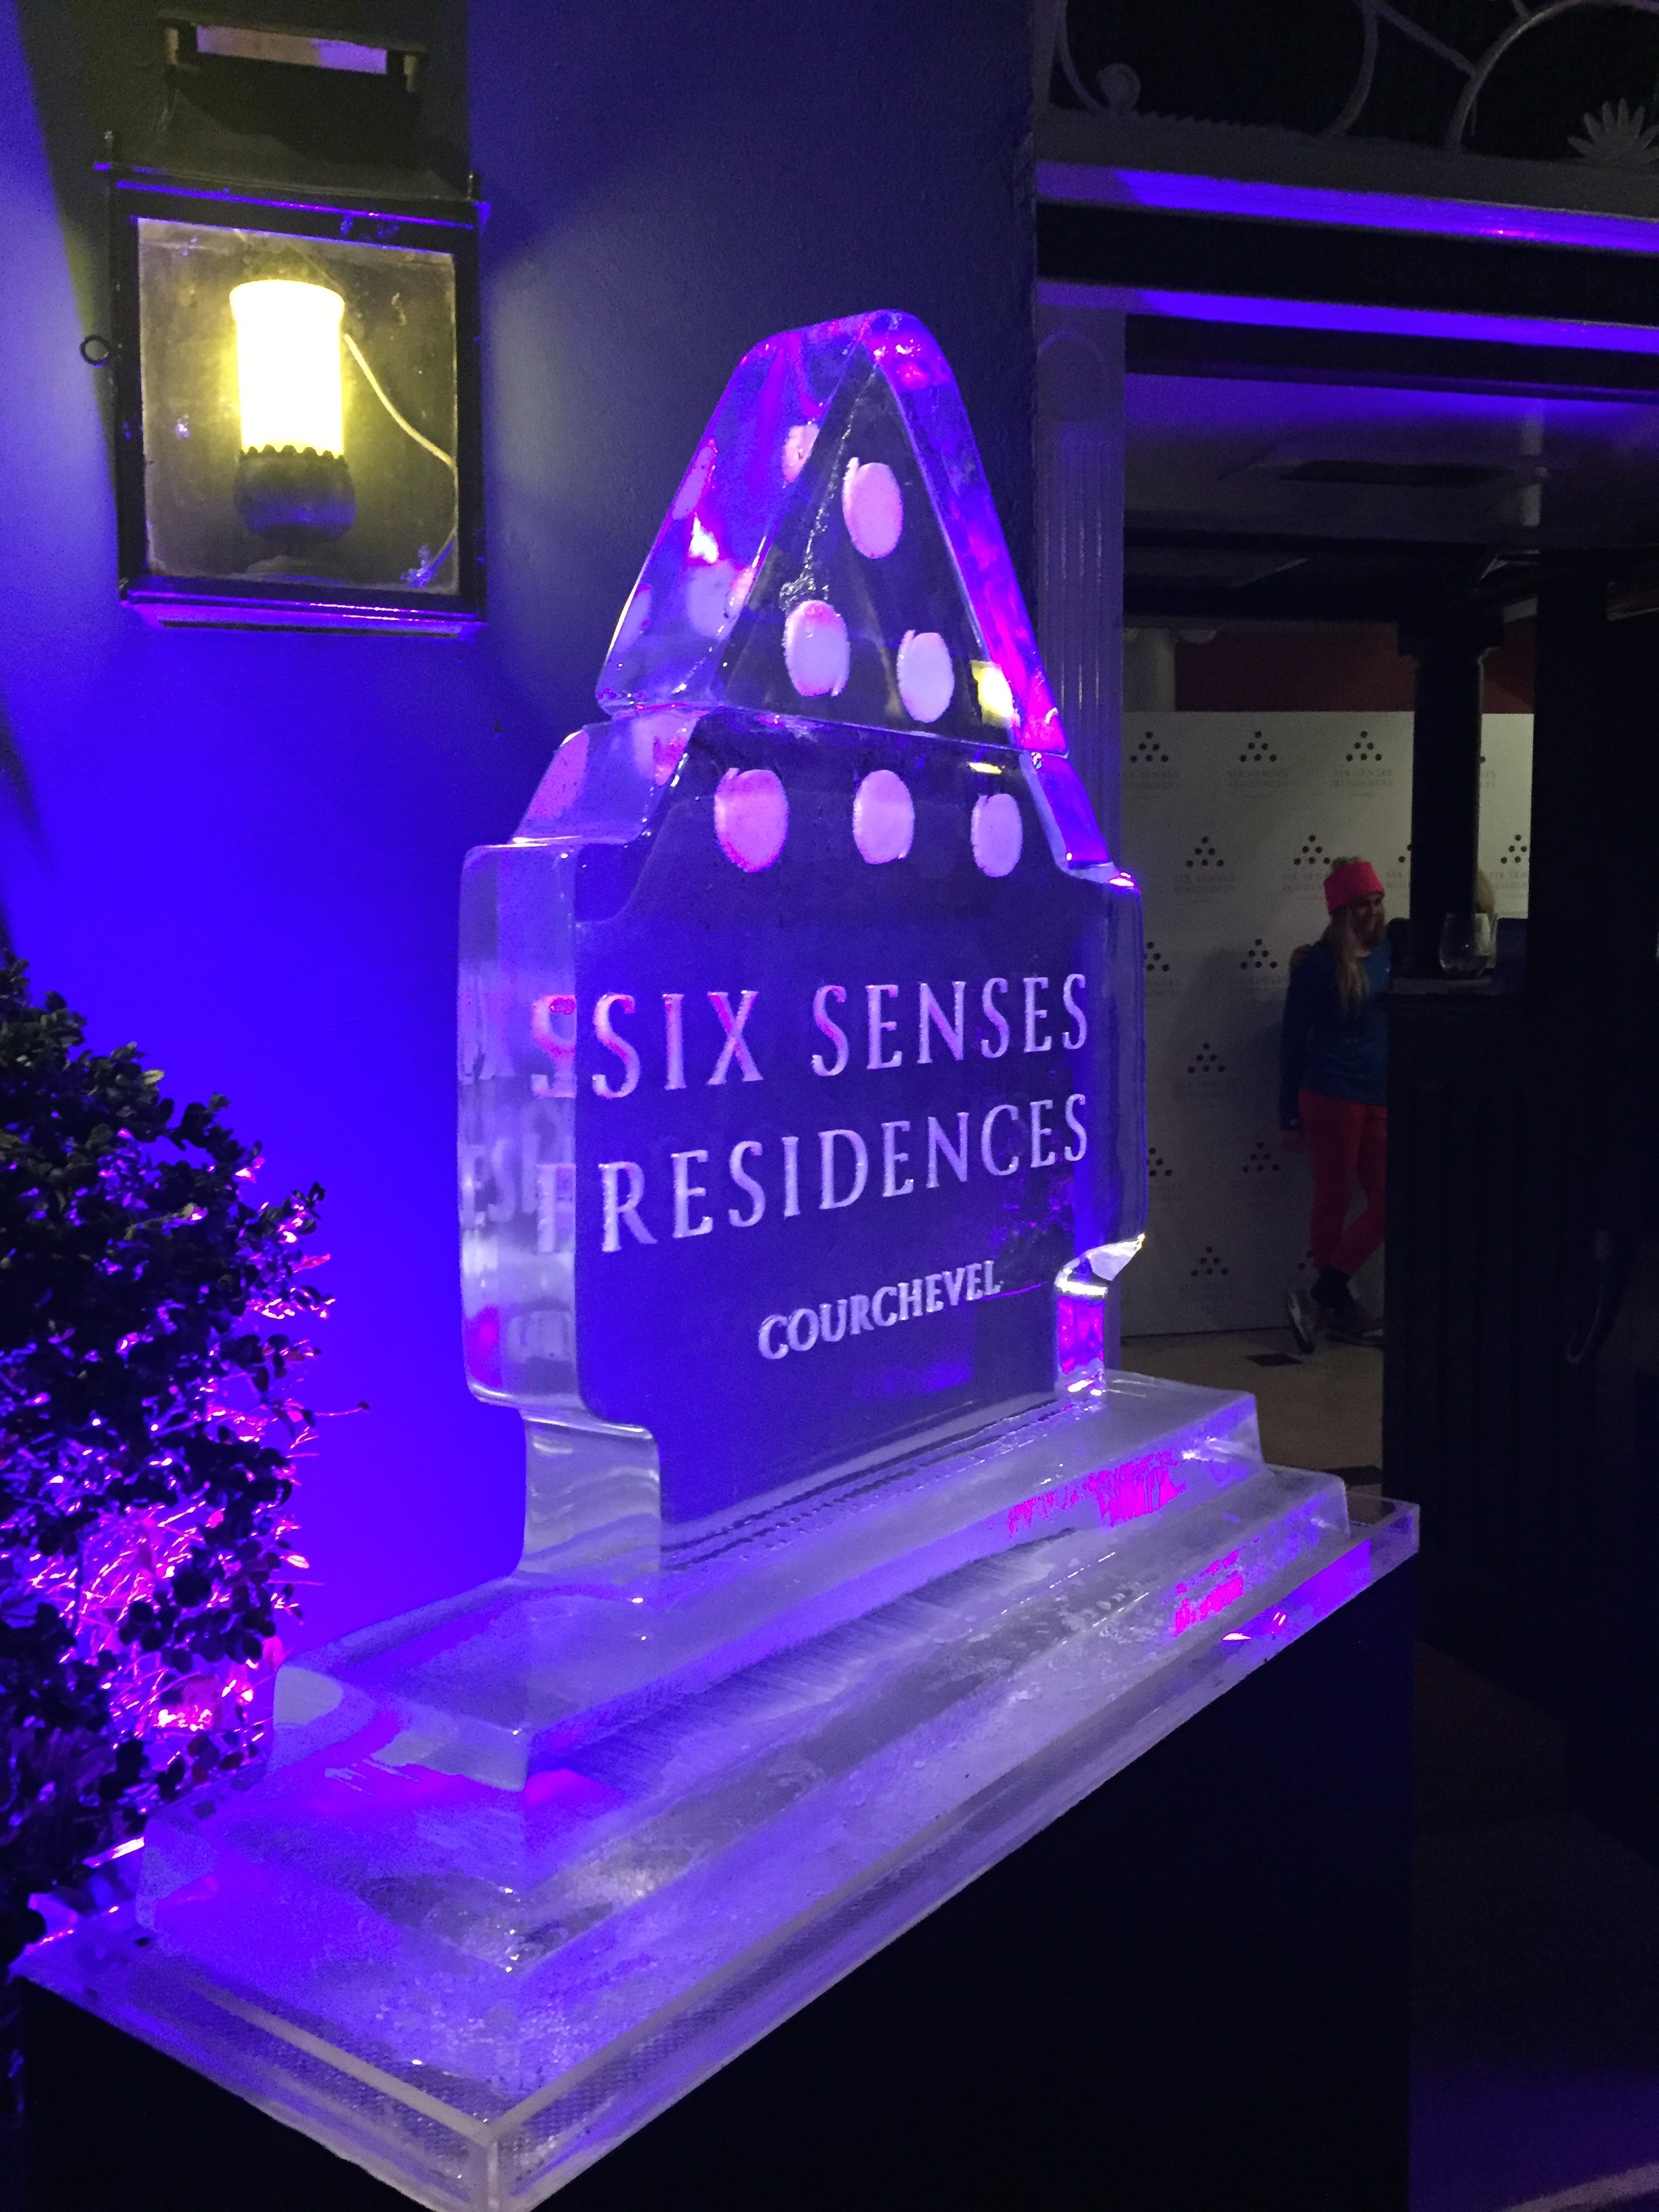 Six Senses residences ice sculpture